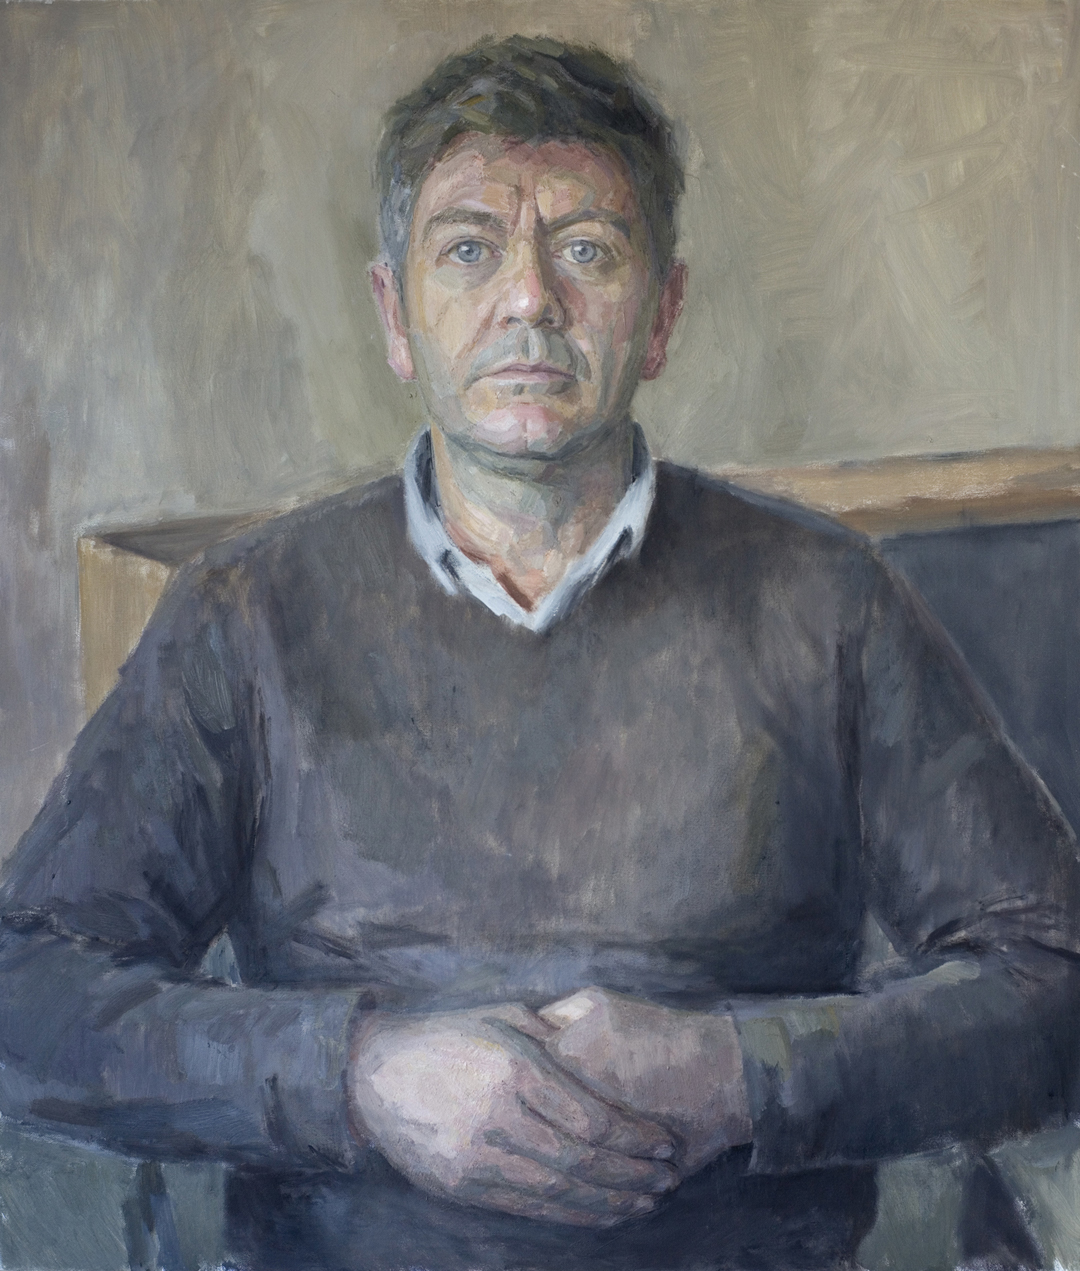 Hero Johnson. Royal Society of Portrait Painters 2014.